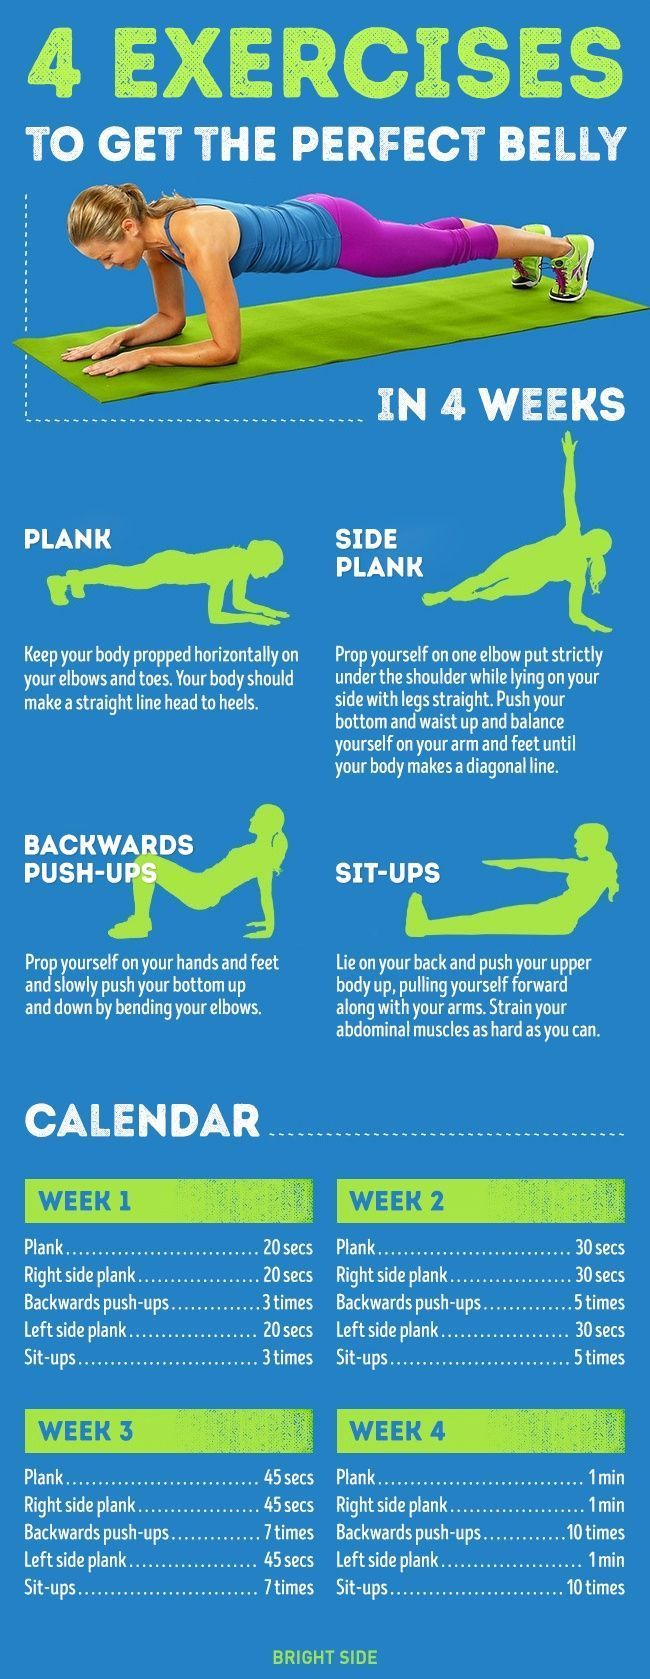 awesome Four simple exercises toget the perfect belly injust four weeks